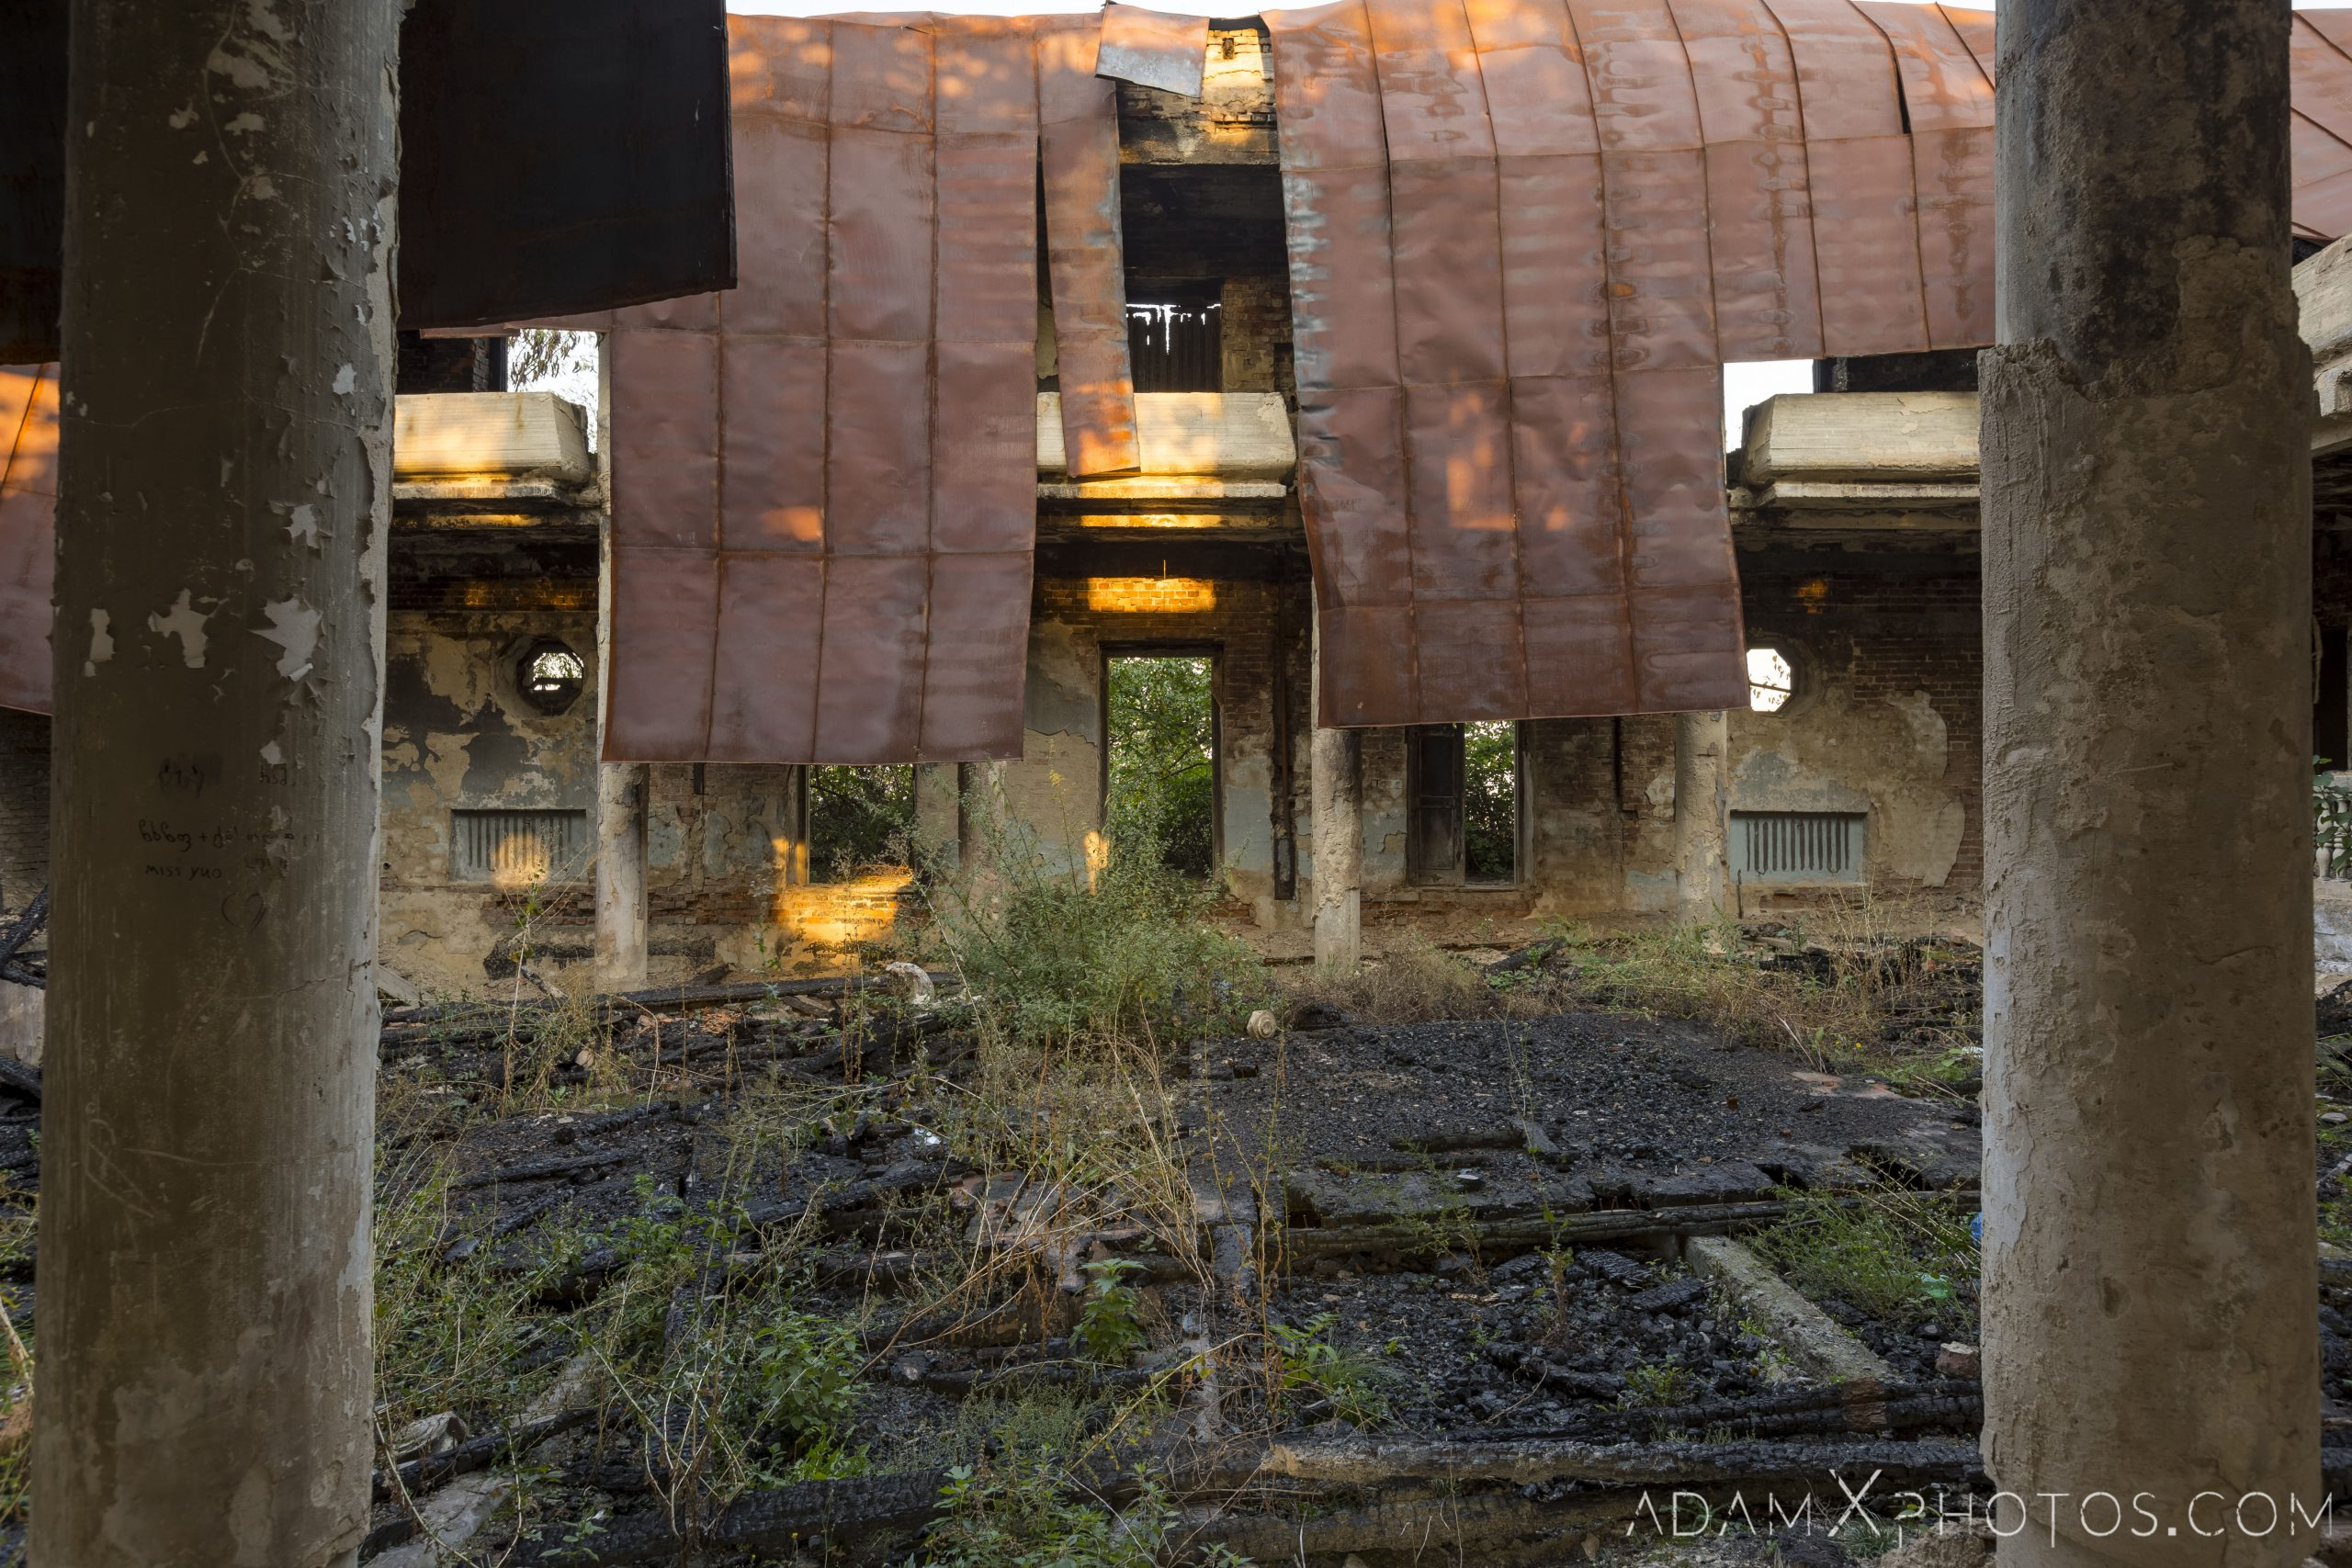 Side view Burned burnt collapsed roof metal House of Culture Palace rural Soviet era Georgia Adam X AdamXPhotos Urbex Urban Exploration 2018 Abandoned Access History decay ruins lost forgotten derelict location creepy haunting eerie security